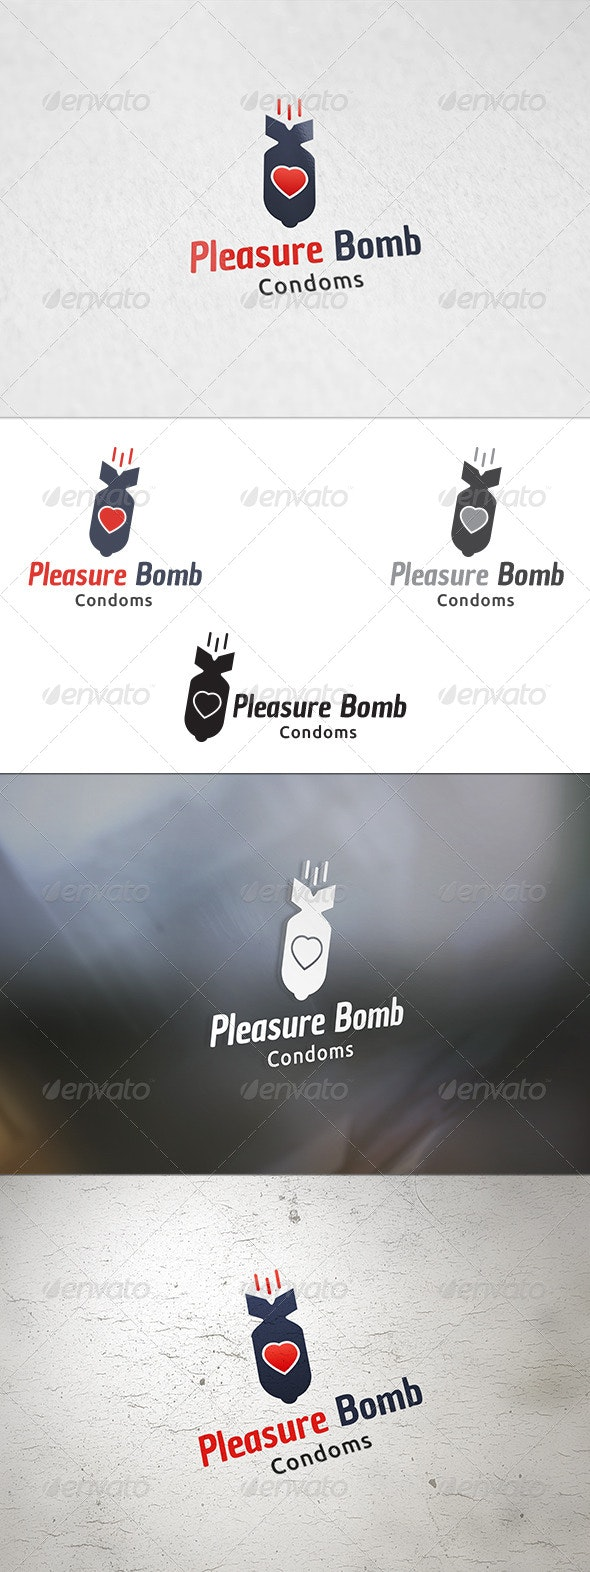 Pleasure Bomb - Logo Template - Objects Logo Templates